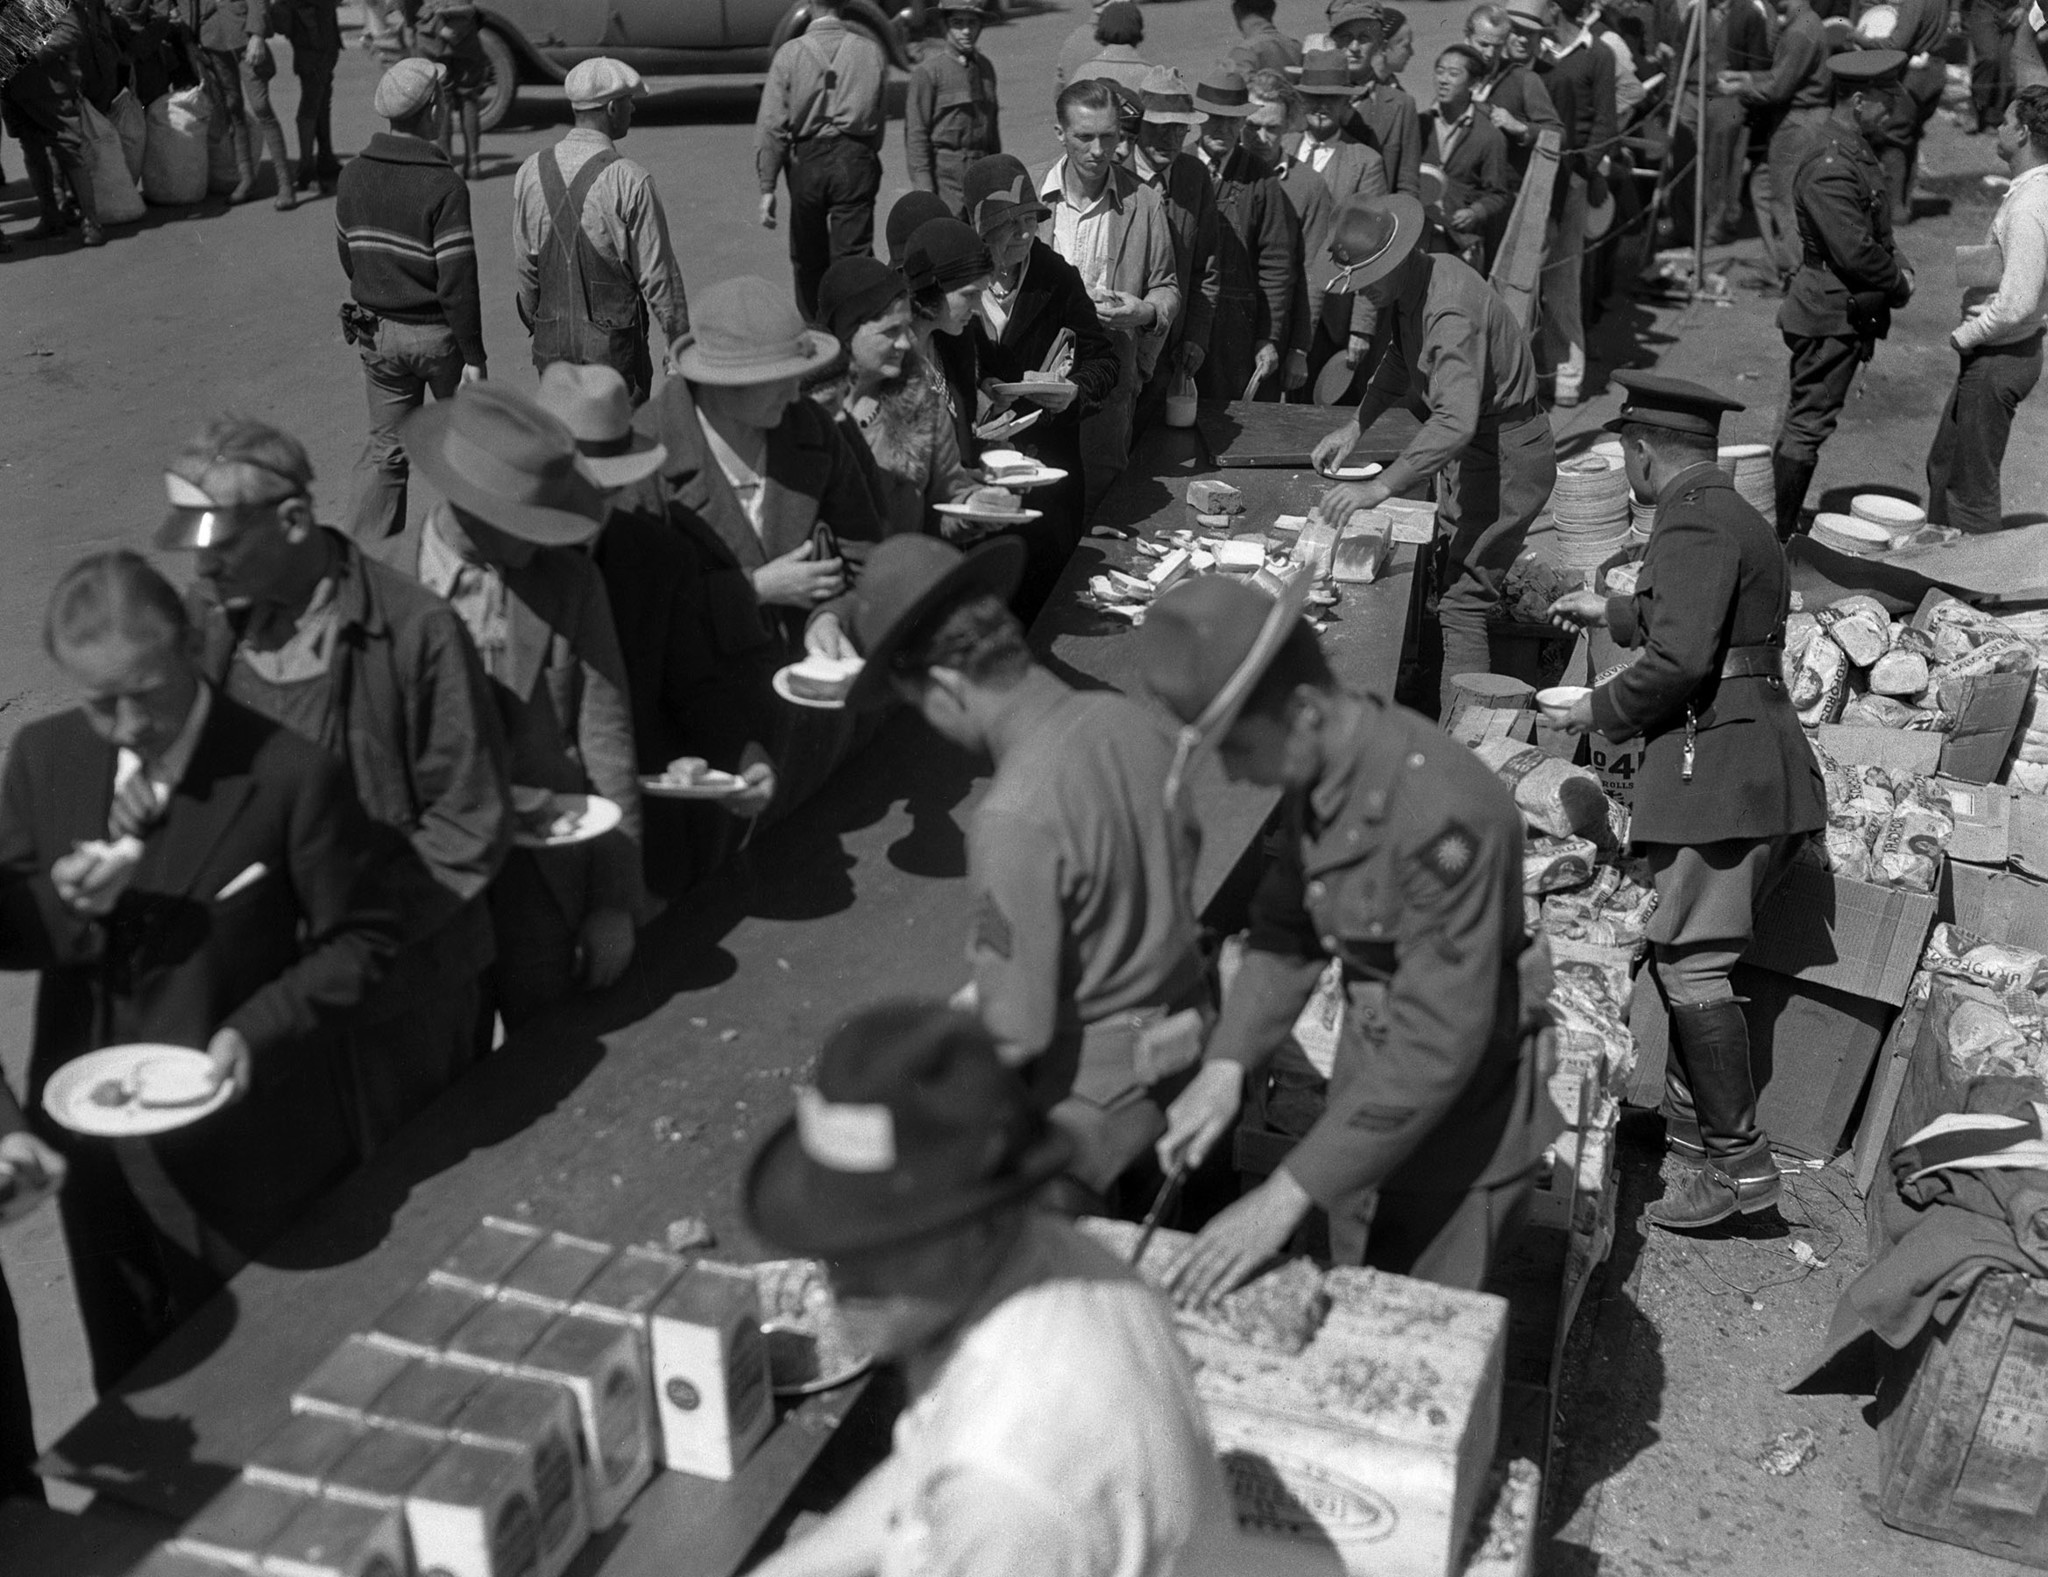 People in line holding plates of food after the March 10, 1933, Long Beach earthquake. Appears to be